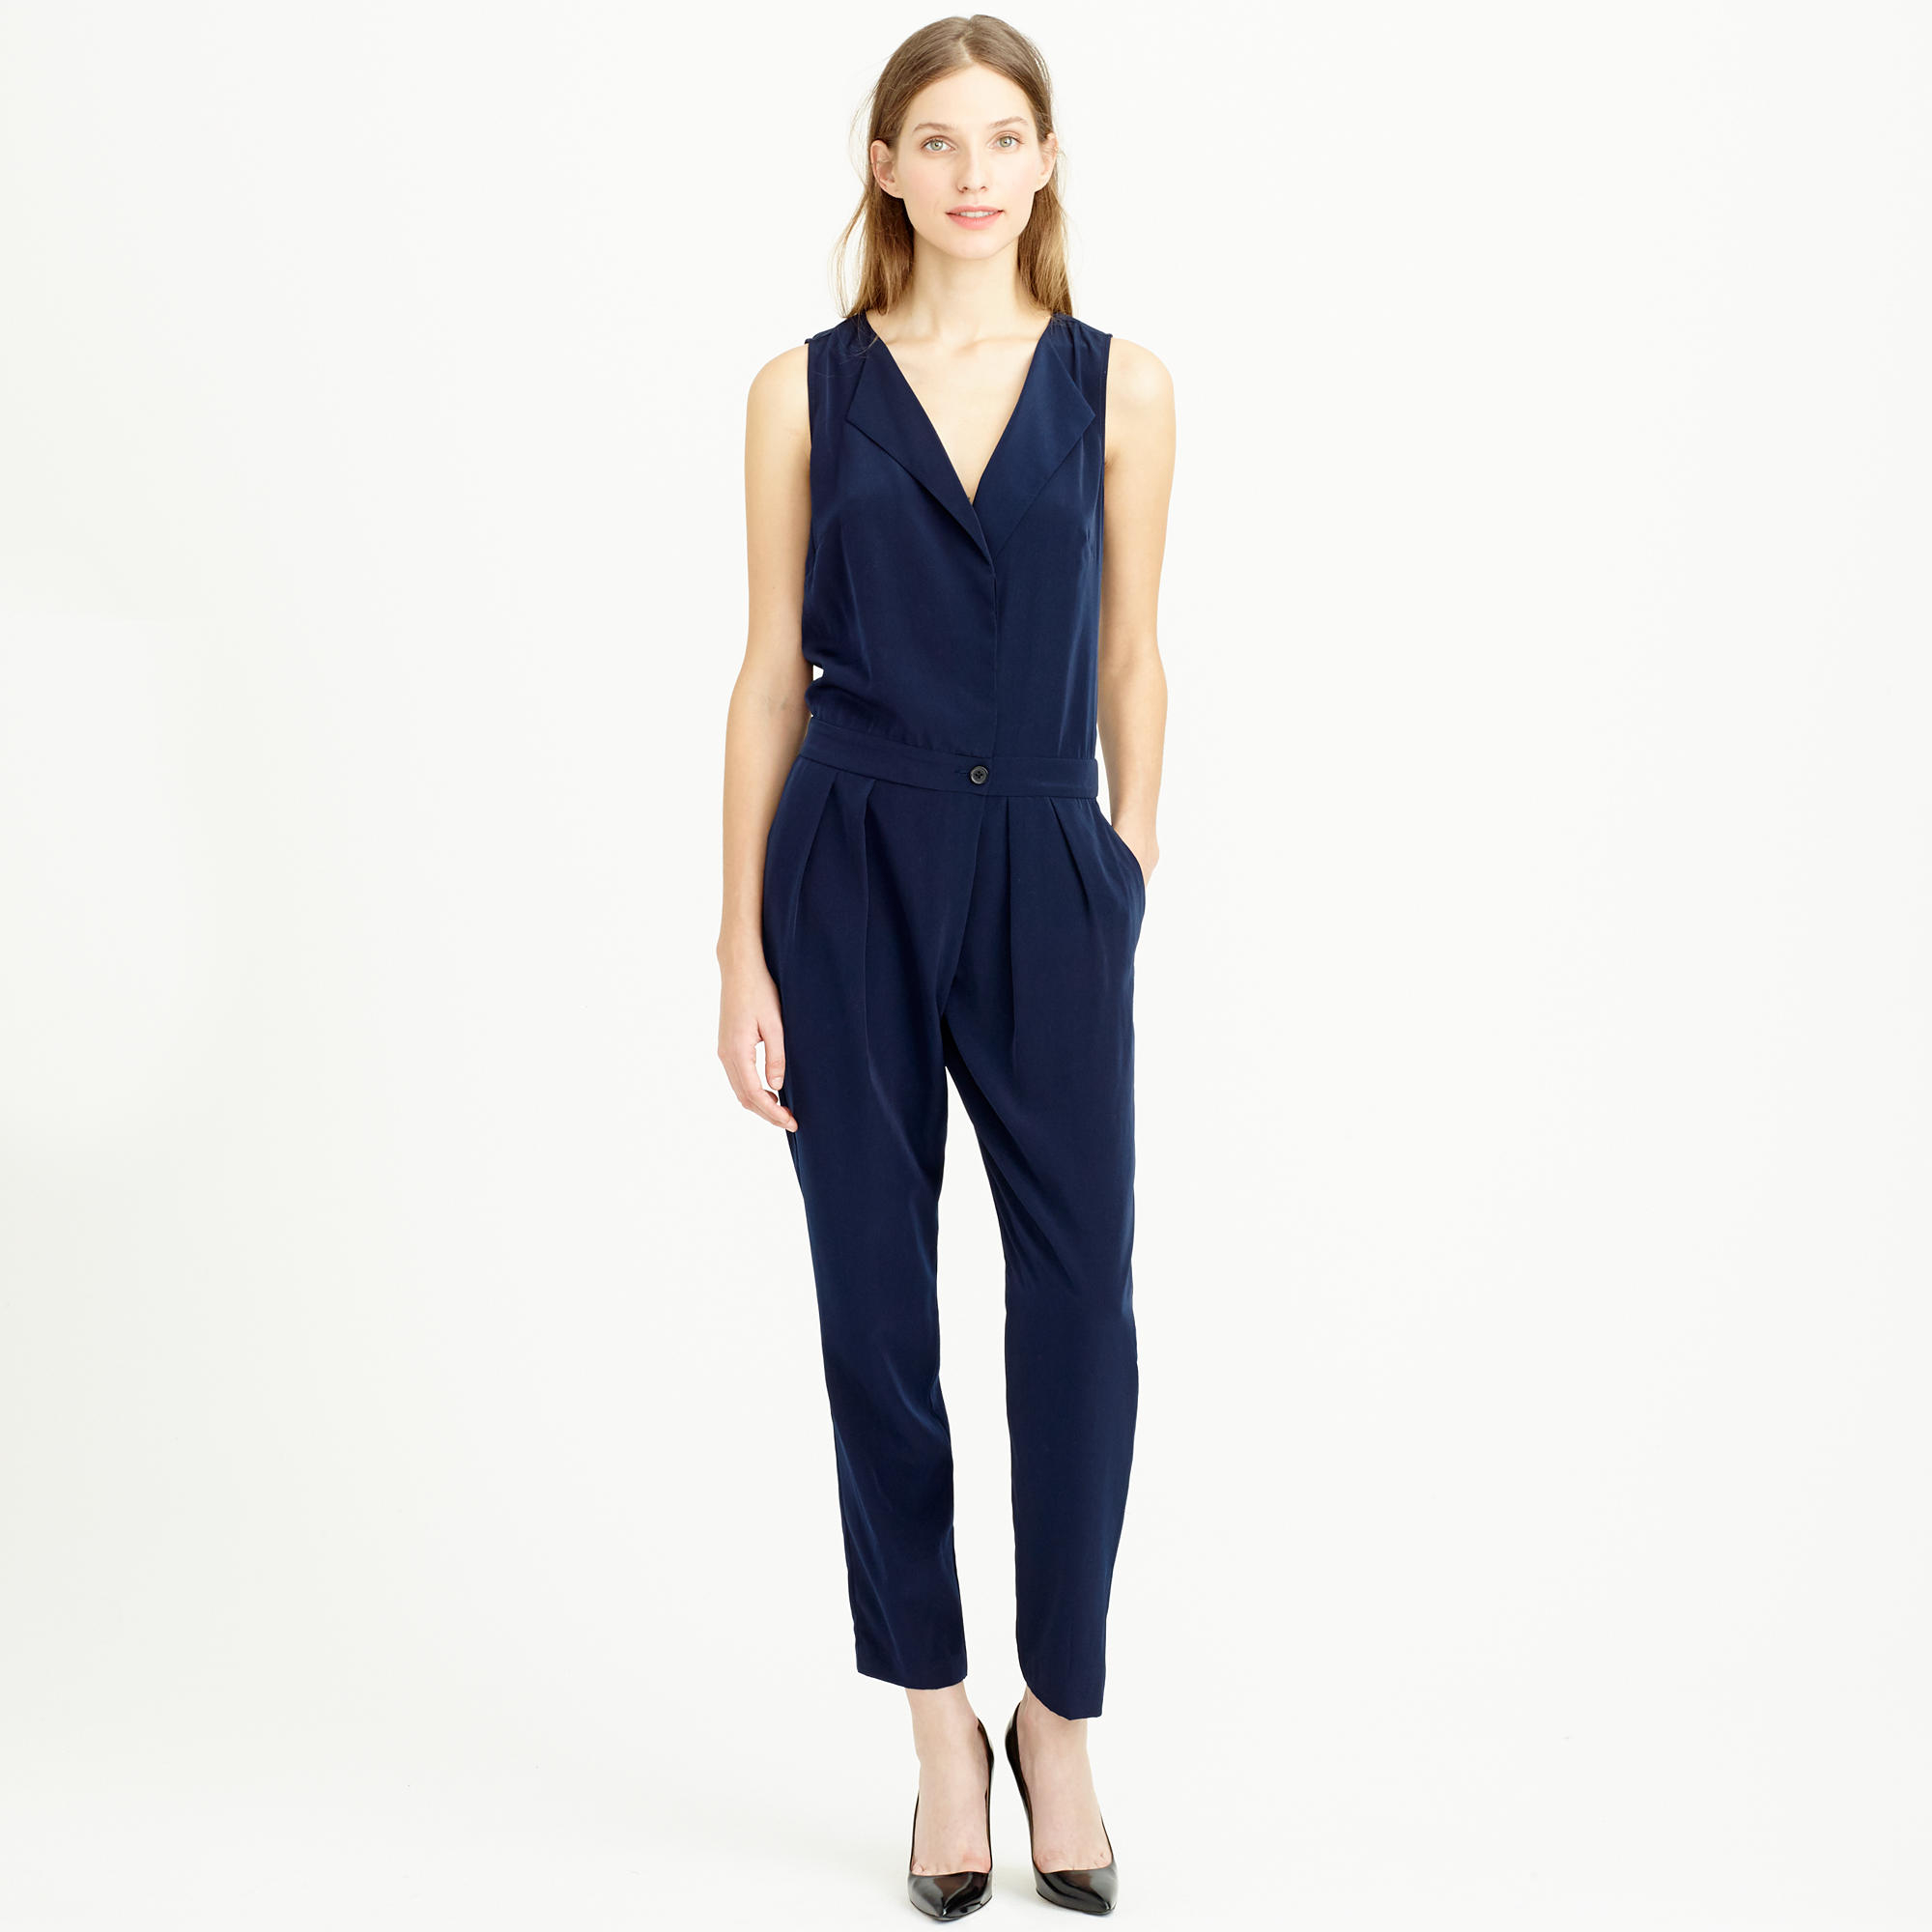 bc456cedfb23 Lyst - J.Crew Sleeveless Trench Jumpsuit in Blue